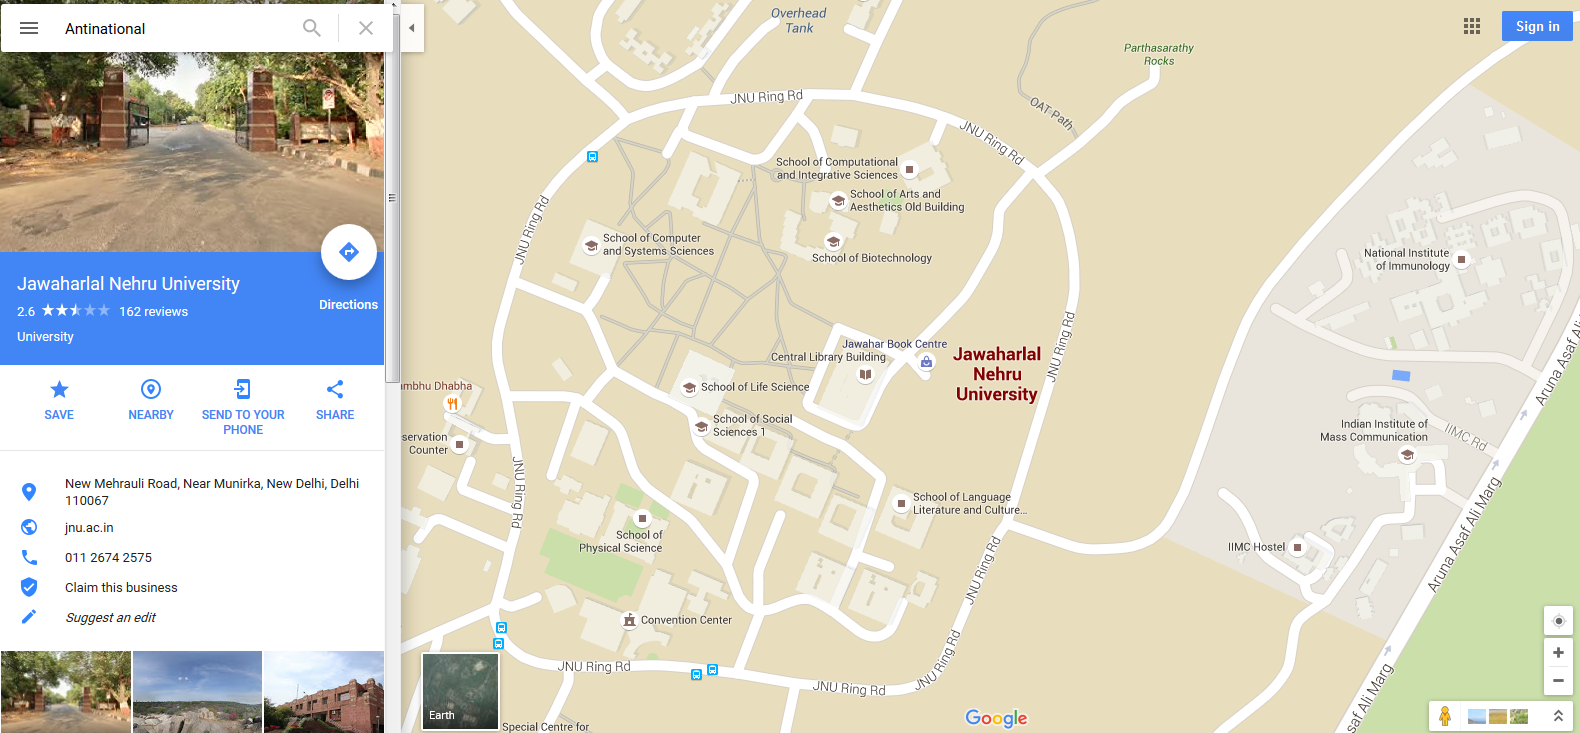 How did Google Maps brand JNU as Antinational    Digital Marketing     The Map Maker  a Google tool  that gives people ability to edit map  information and supply additional information seems like the obvious  culprit